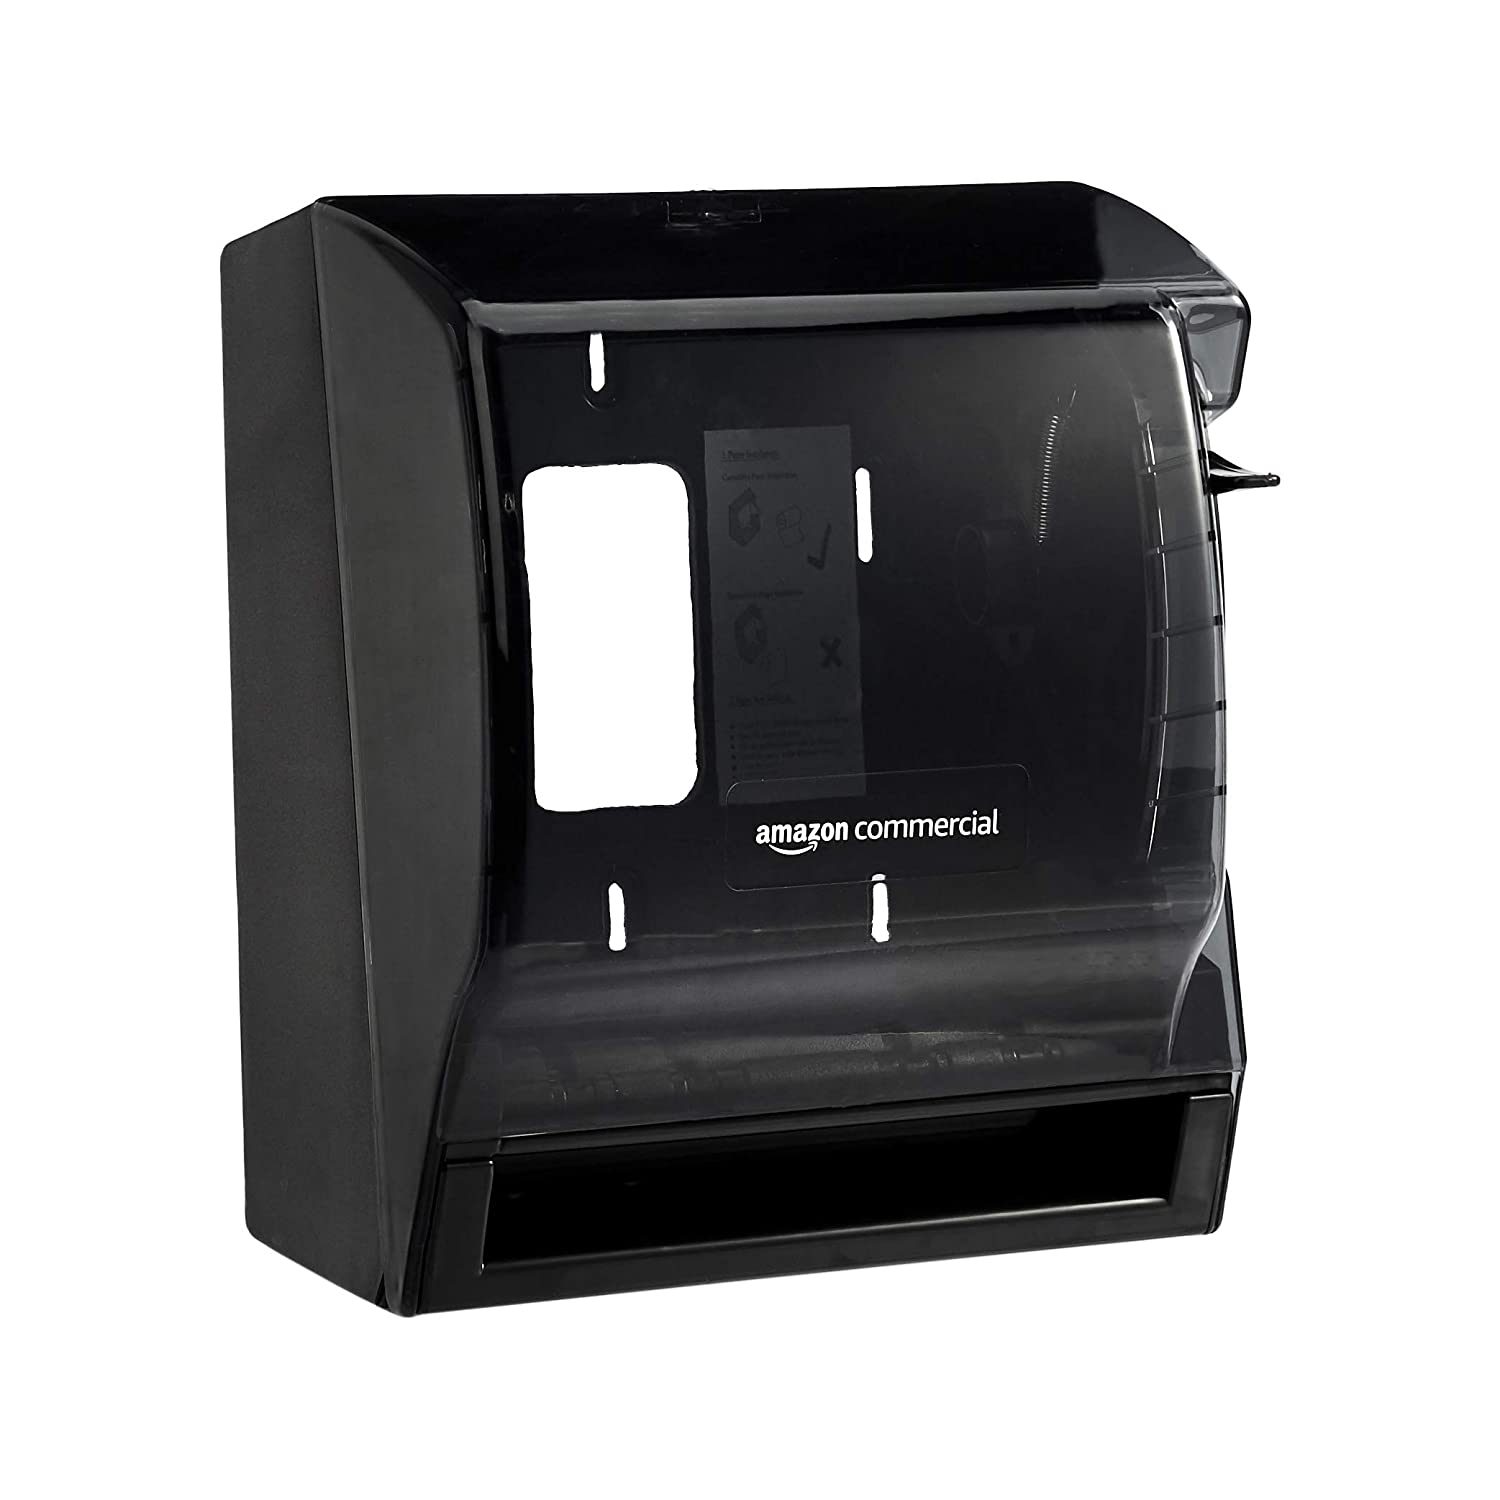 AmazonCommercial Lever Roll Paper Towel Dispenser